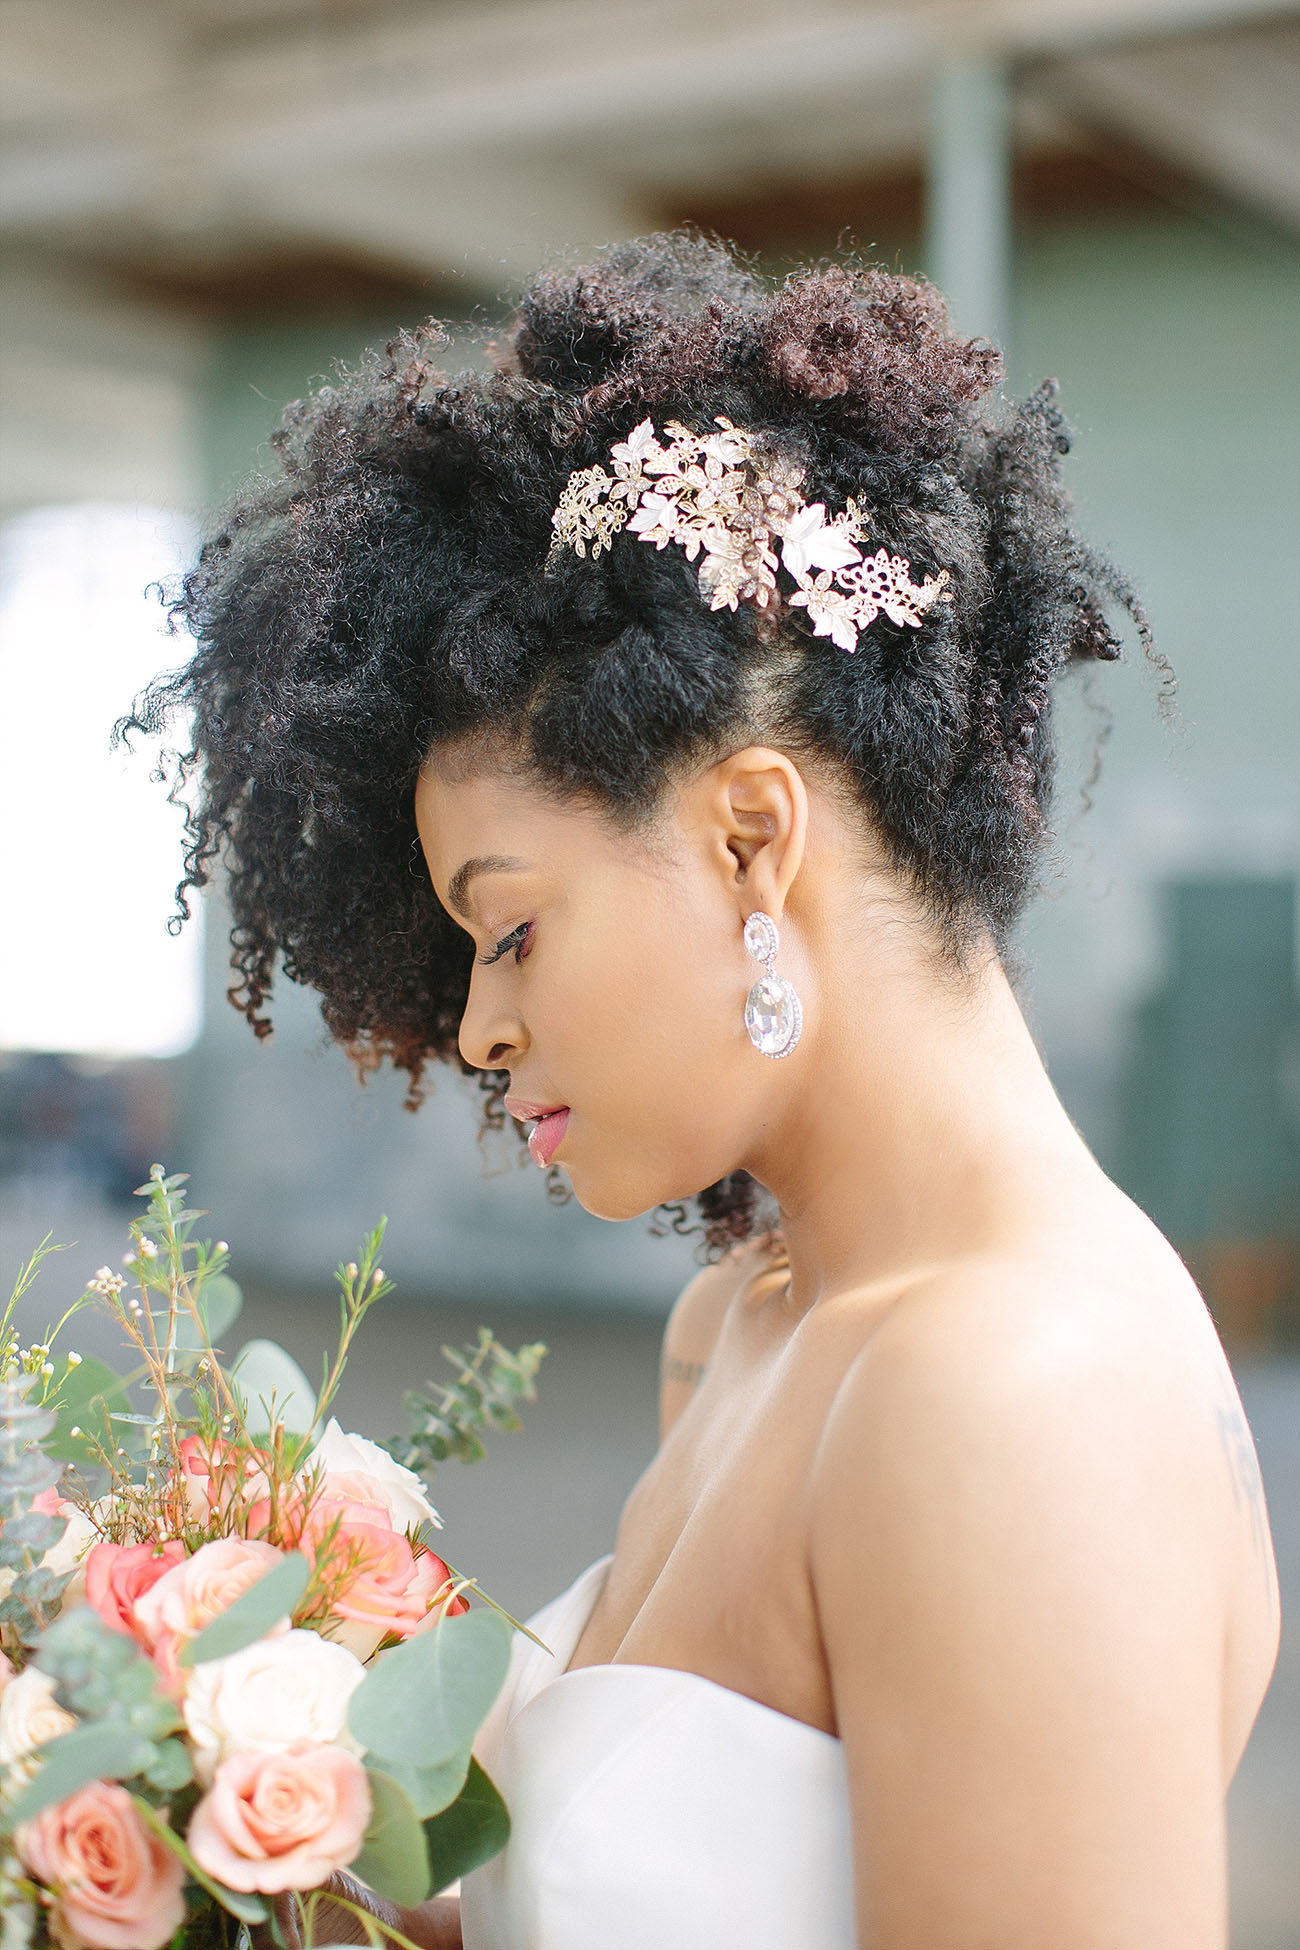 natural curls raised up and accented with gold flowers looks veyr refined, chic and bold